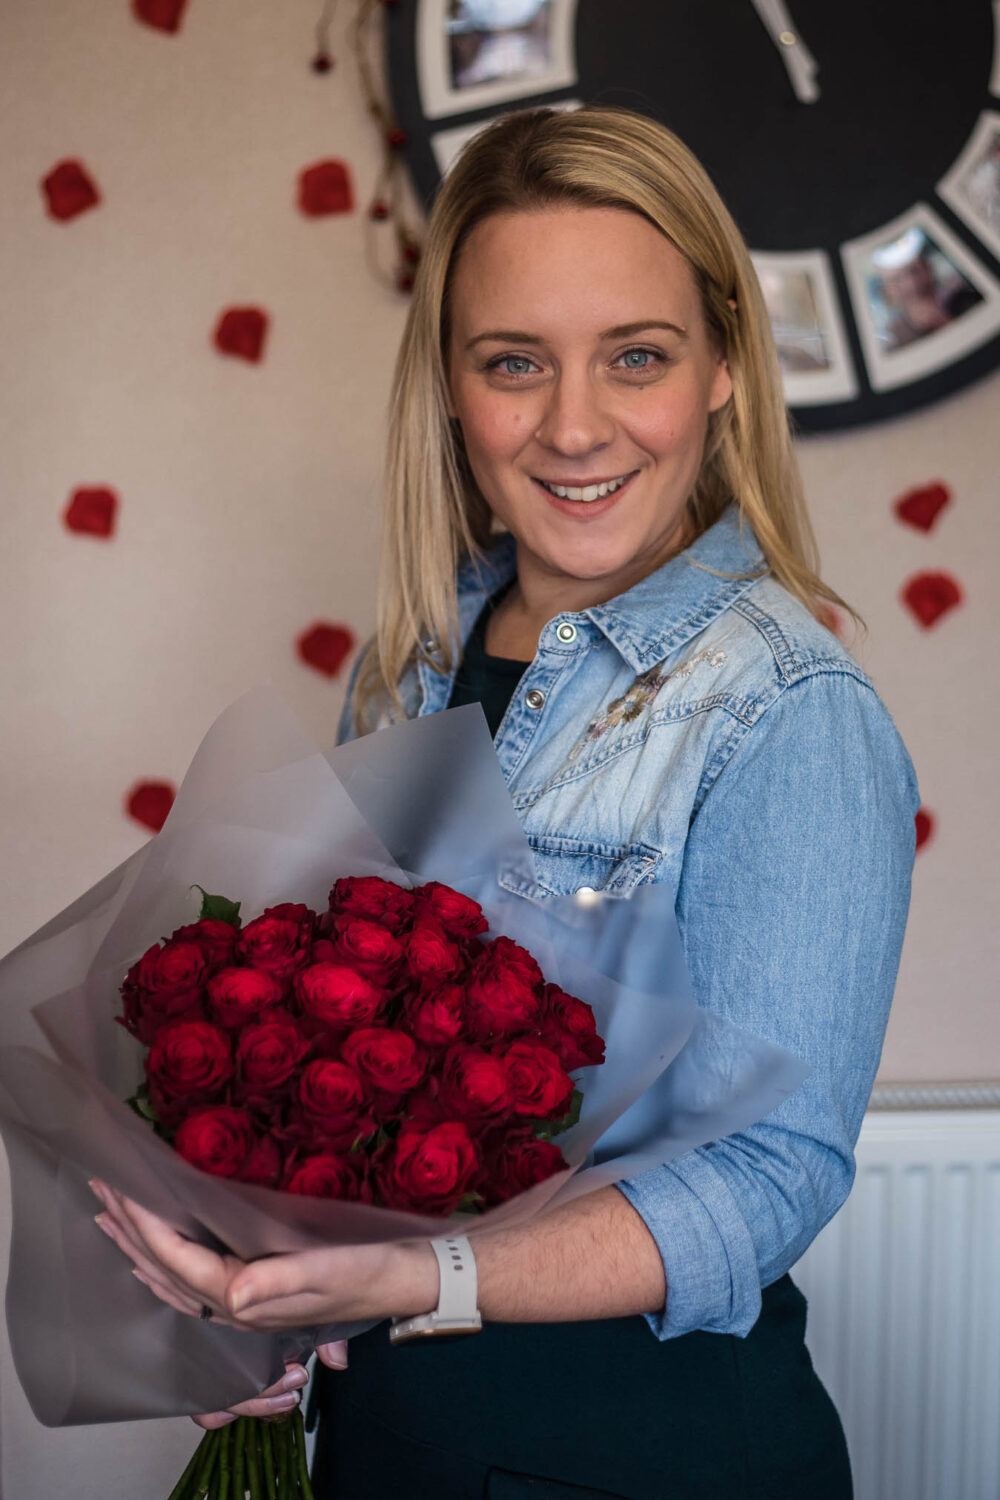 Holly holding a bunch of 24 red roses delivered from Moonpig